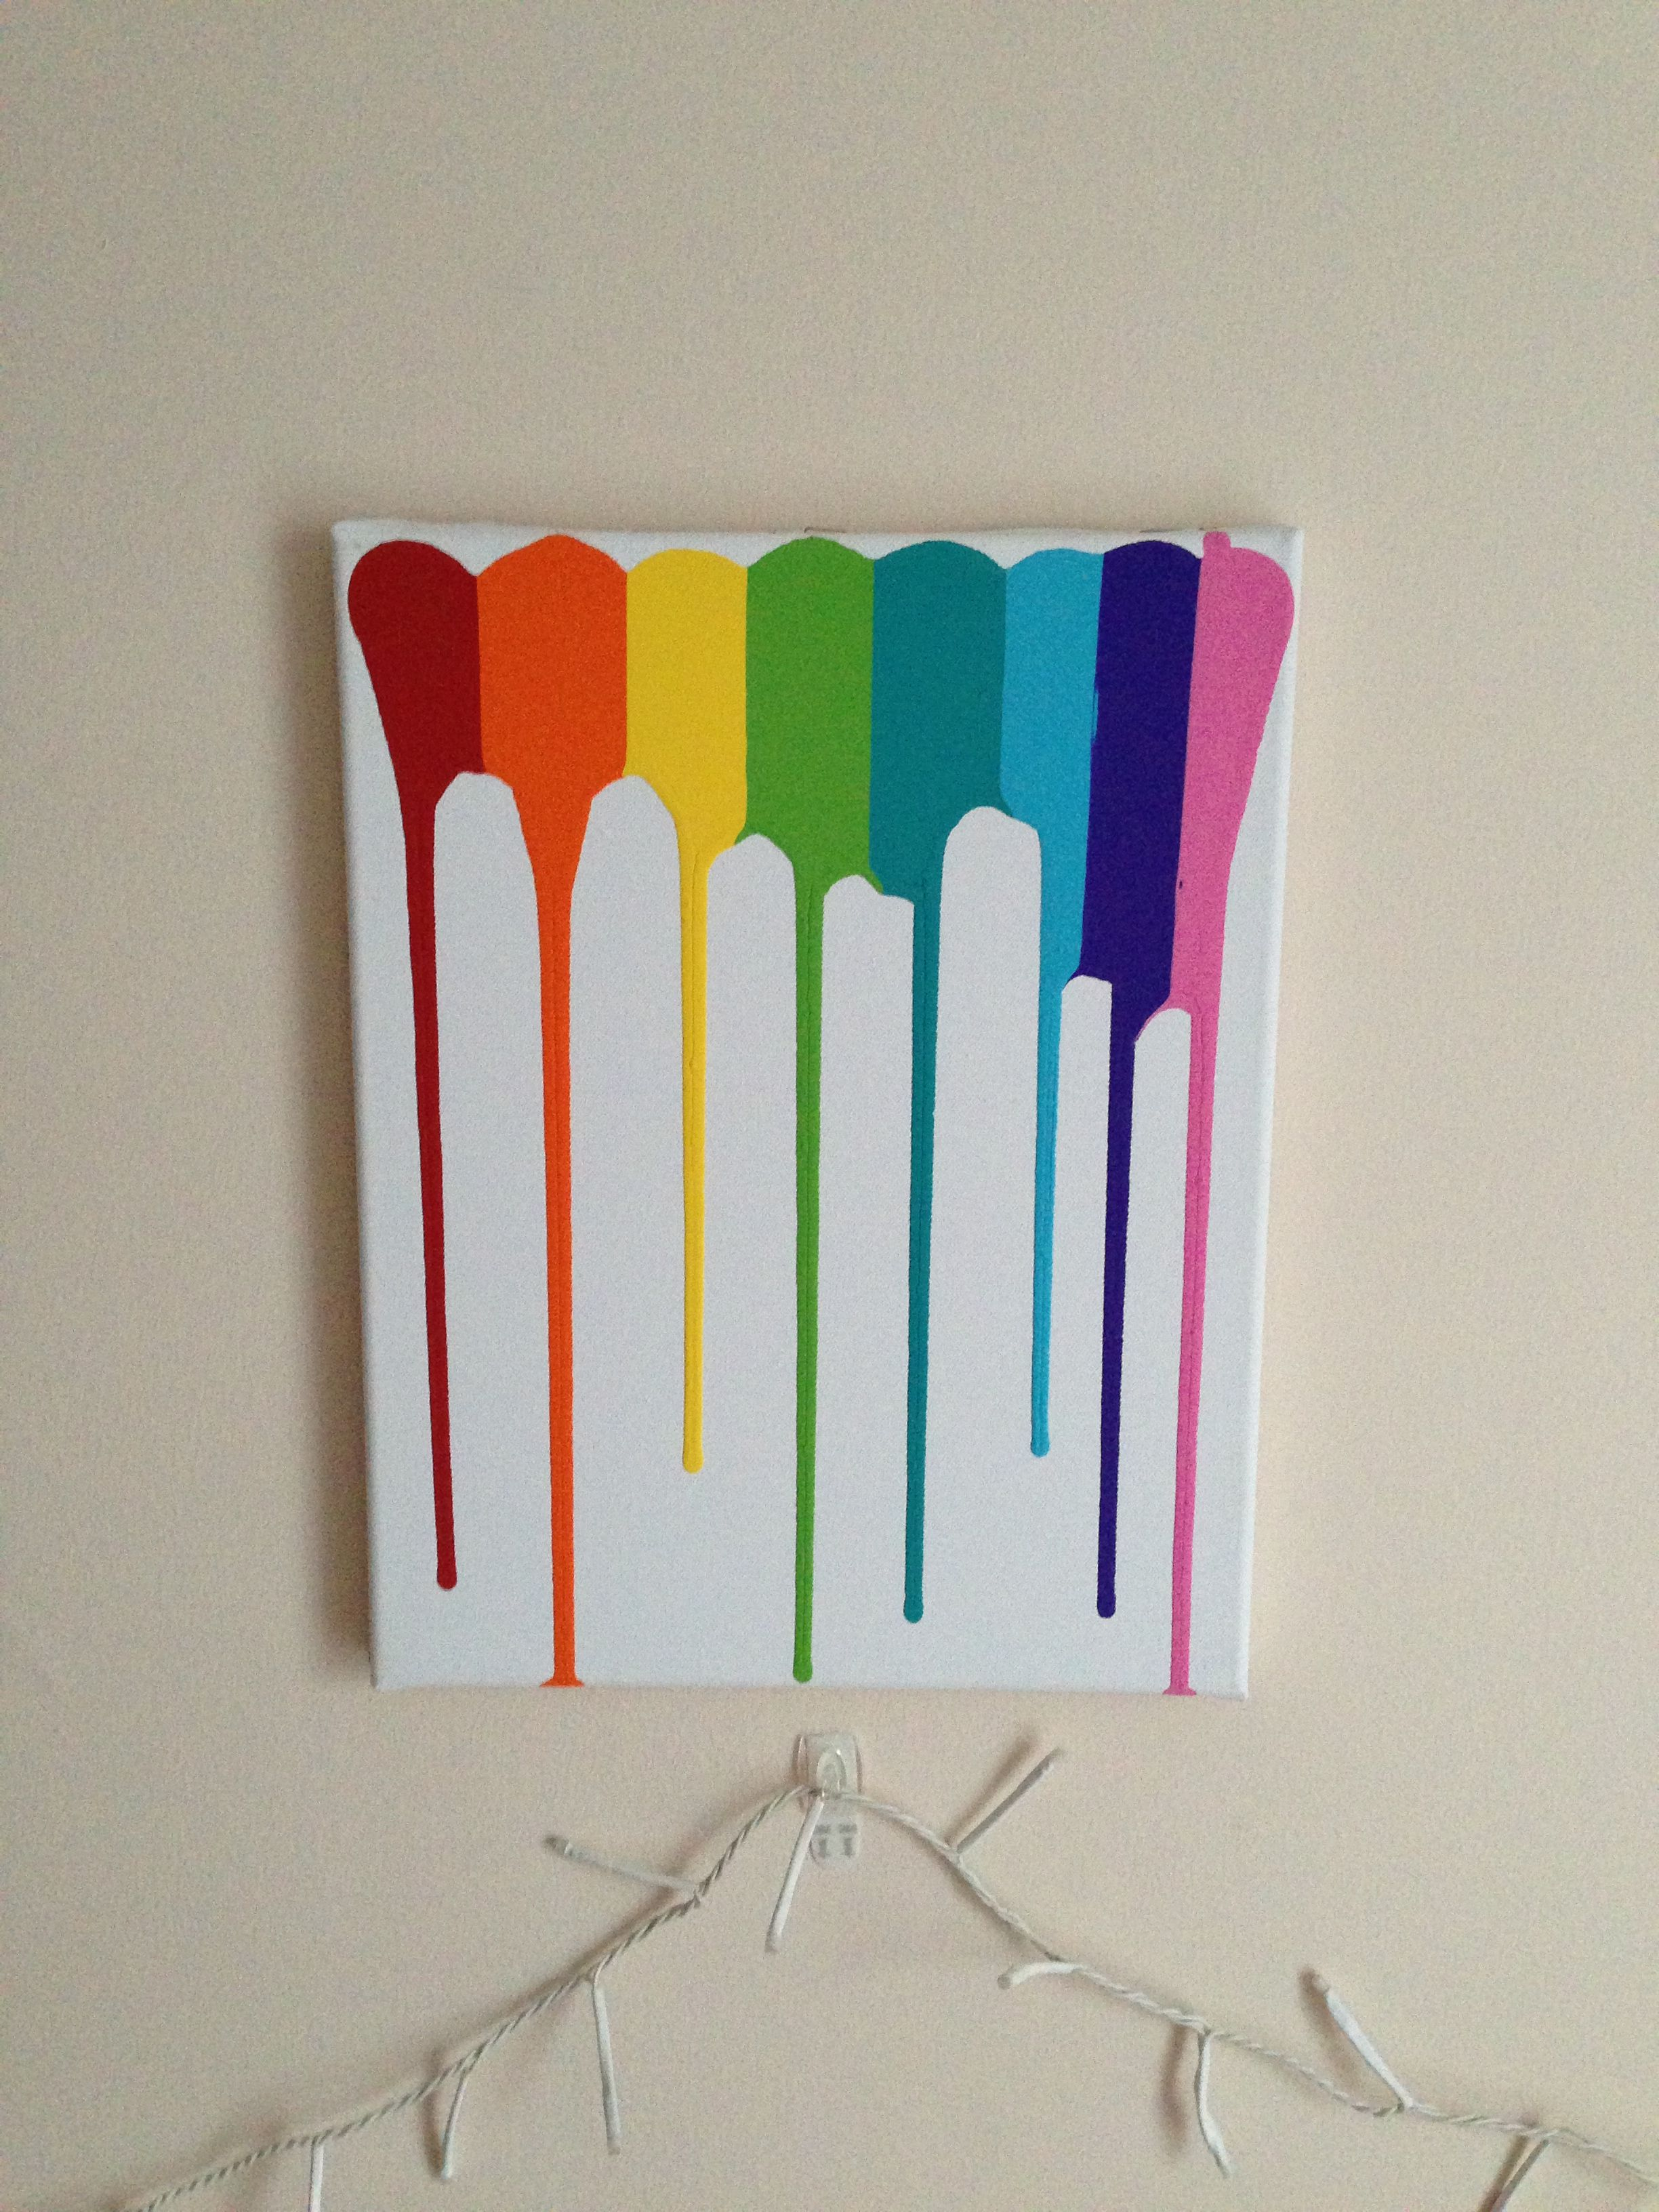 Rainbow Drip Painting Change The Colors And Canvas Size To Your Preference Add Large Drops Of Acrylic Paint To The Colorful Art Rainbow Paint Drip Painting